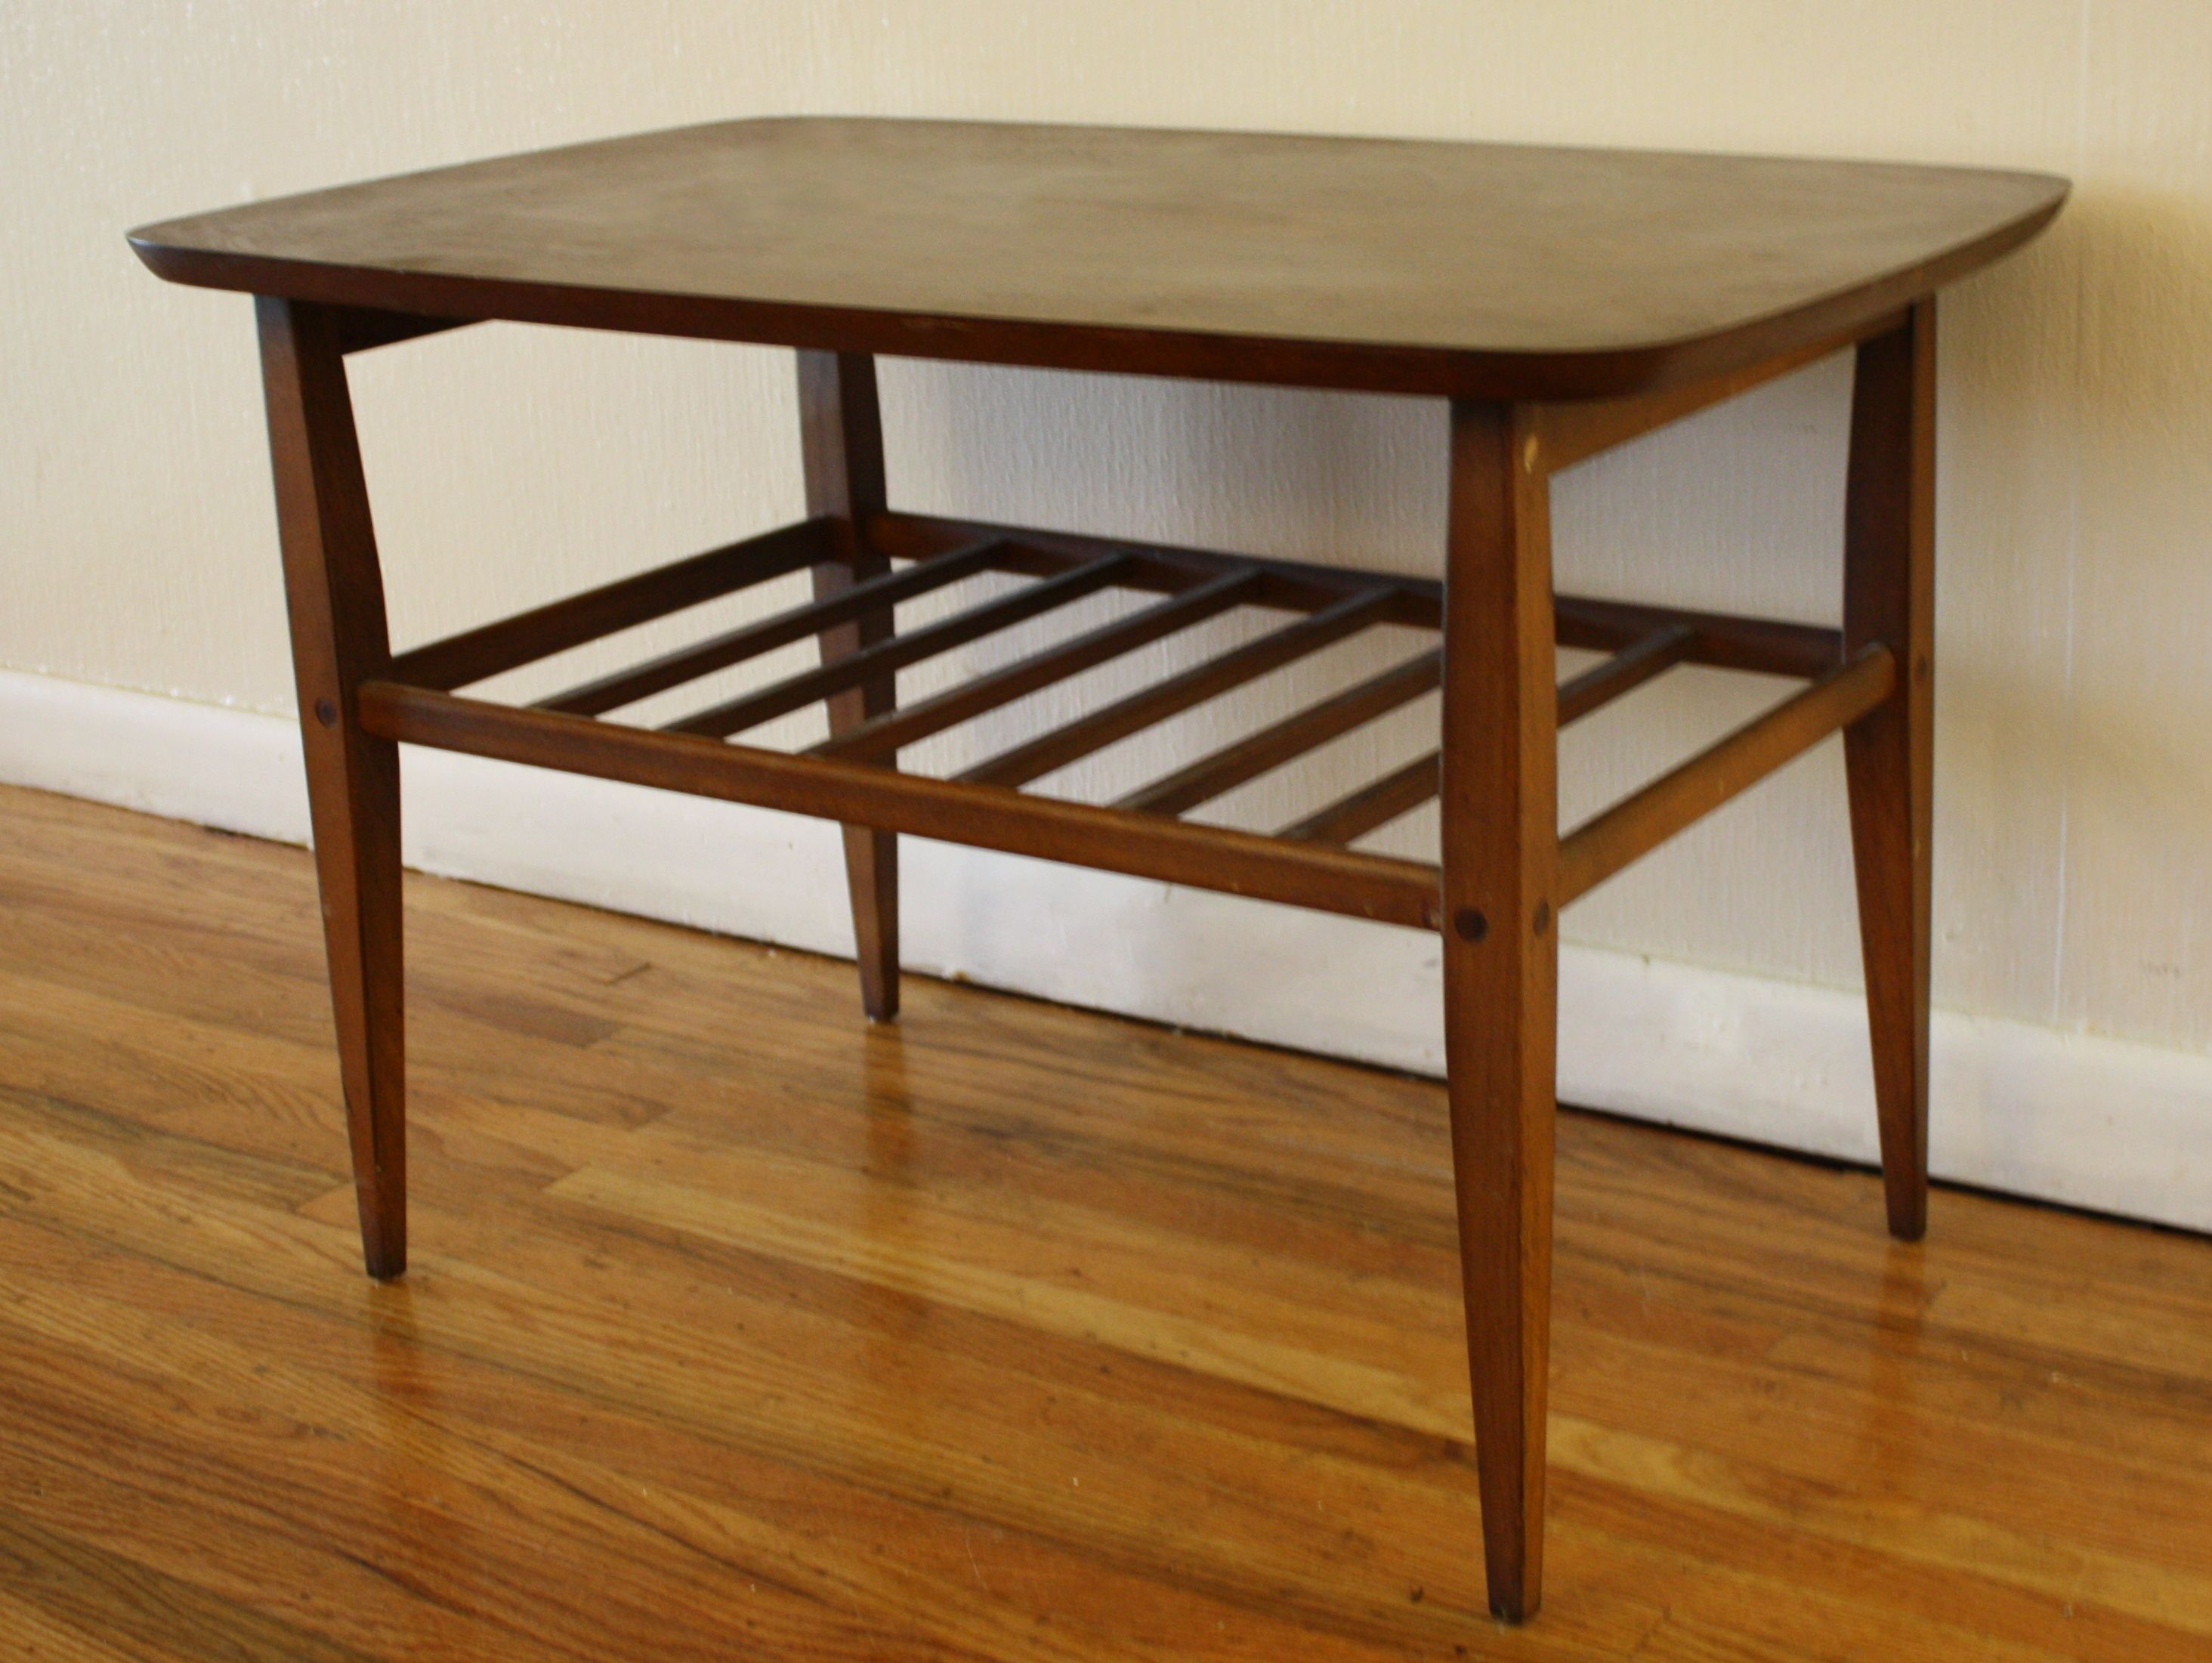 Using Family Mid Century Modern Side Tables And Coffee Table Can I Trust The Kids With Them Modern Side Table Mid Century Modern Side Table Side Table [ 2201 x 2928 Pixel ]